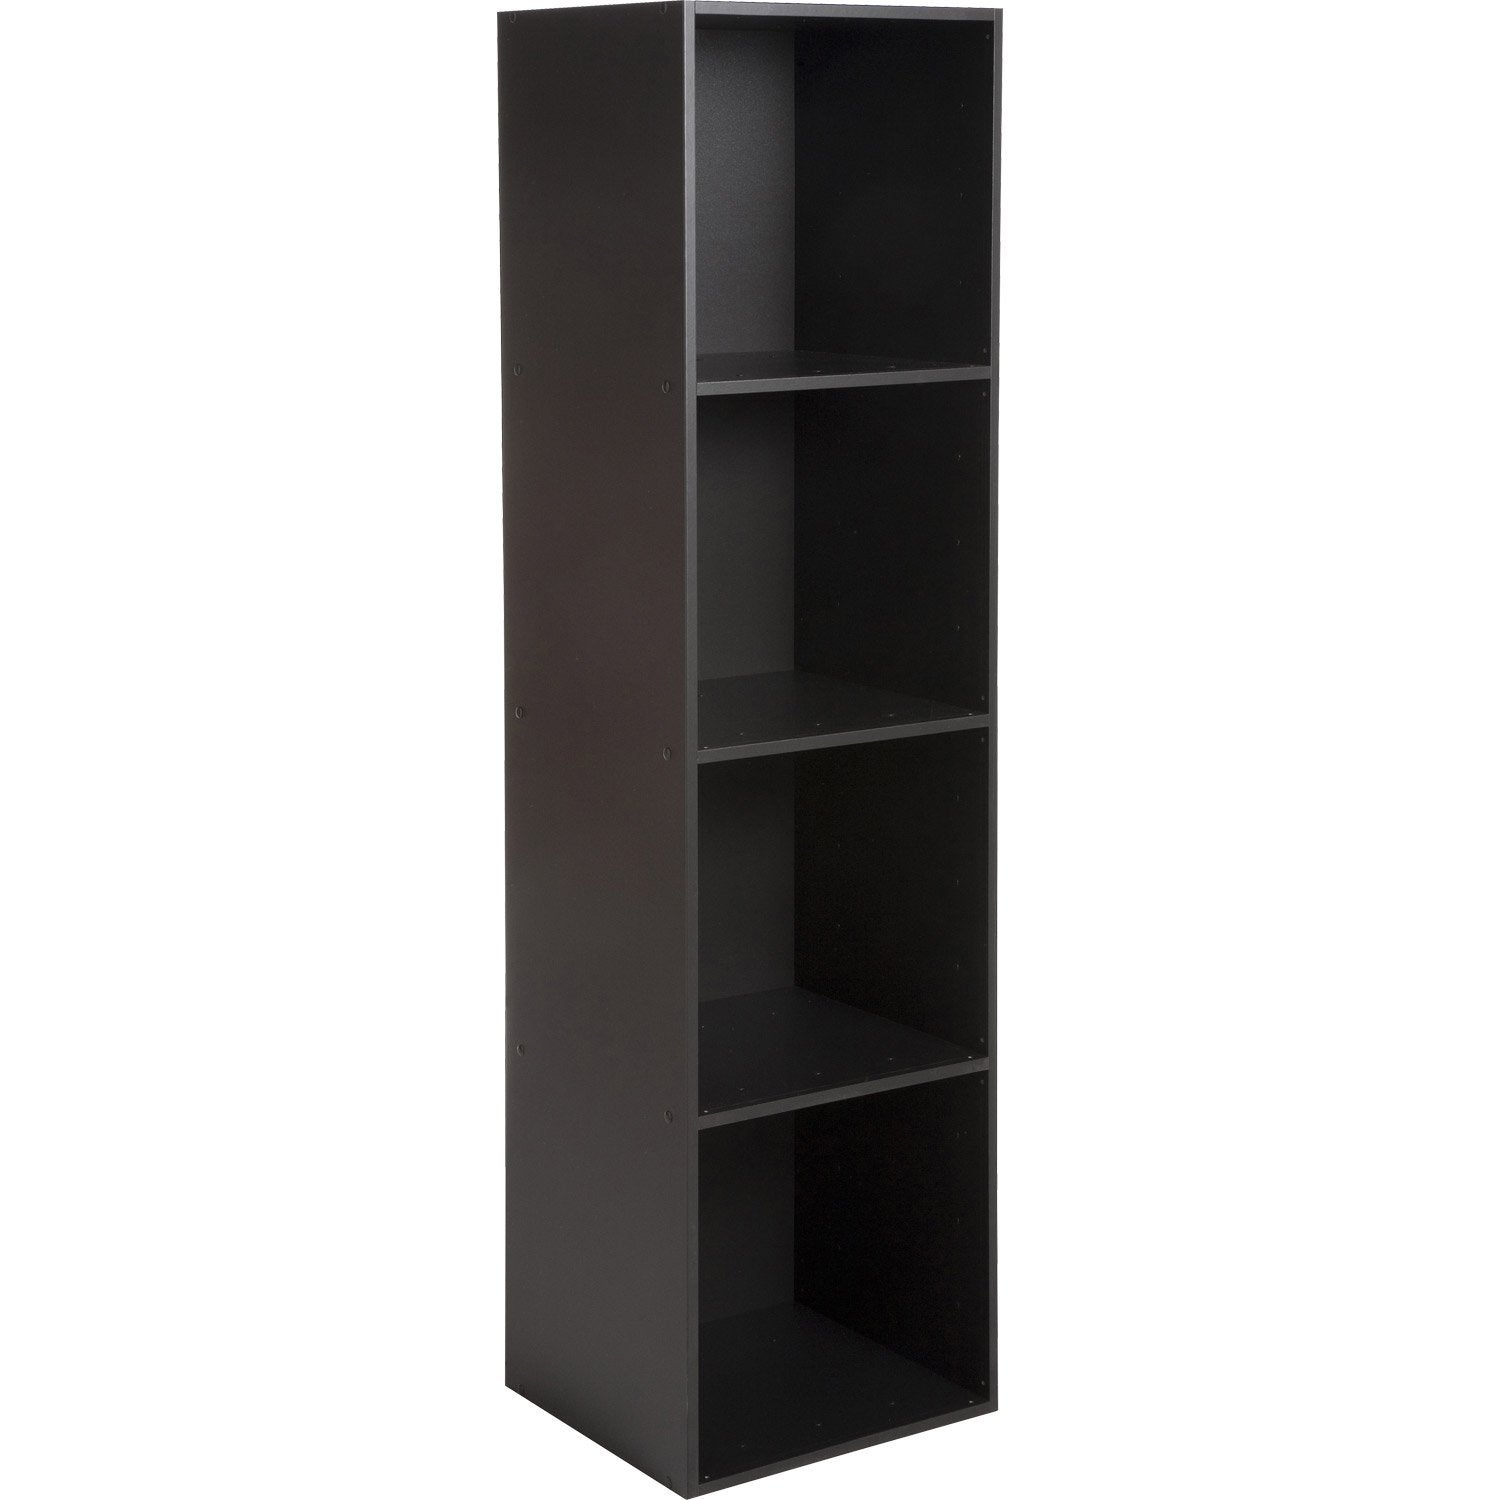 etag re 4 cases multikaz noire l35 2 x h137 2 x p31 7 cm leroy merlin. Black Bedroom Furniture Sets. Home Design Ideas